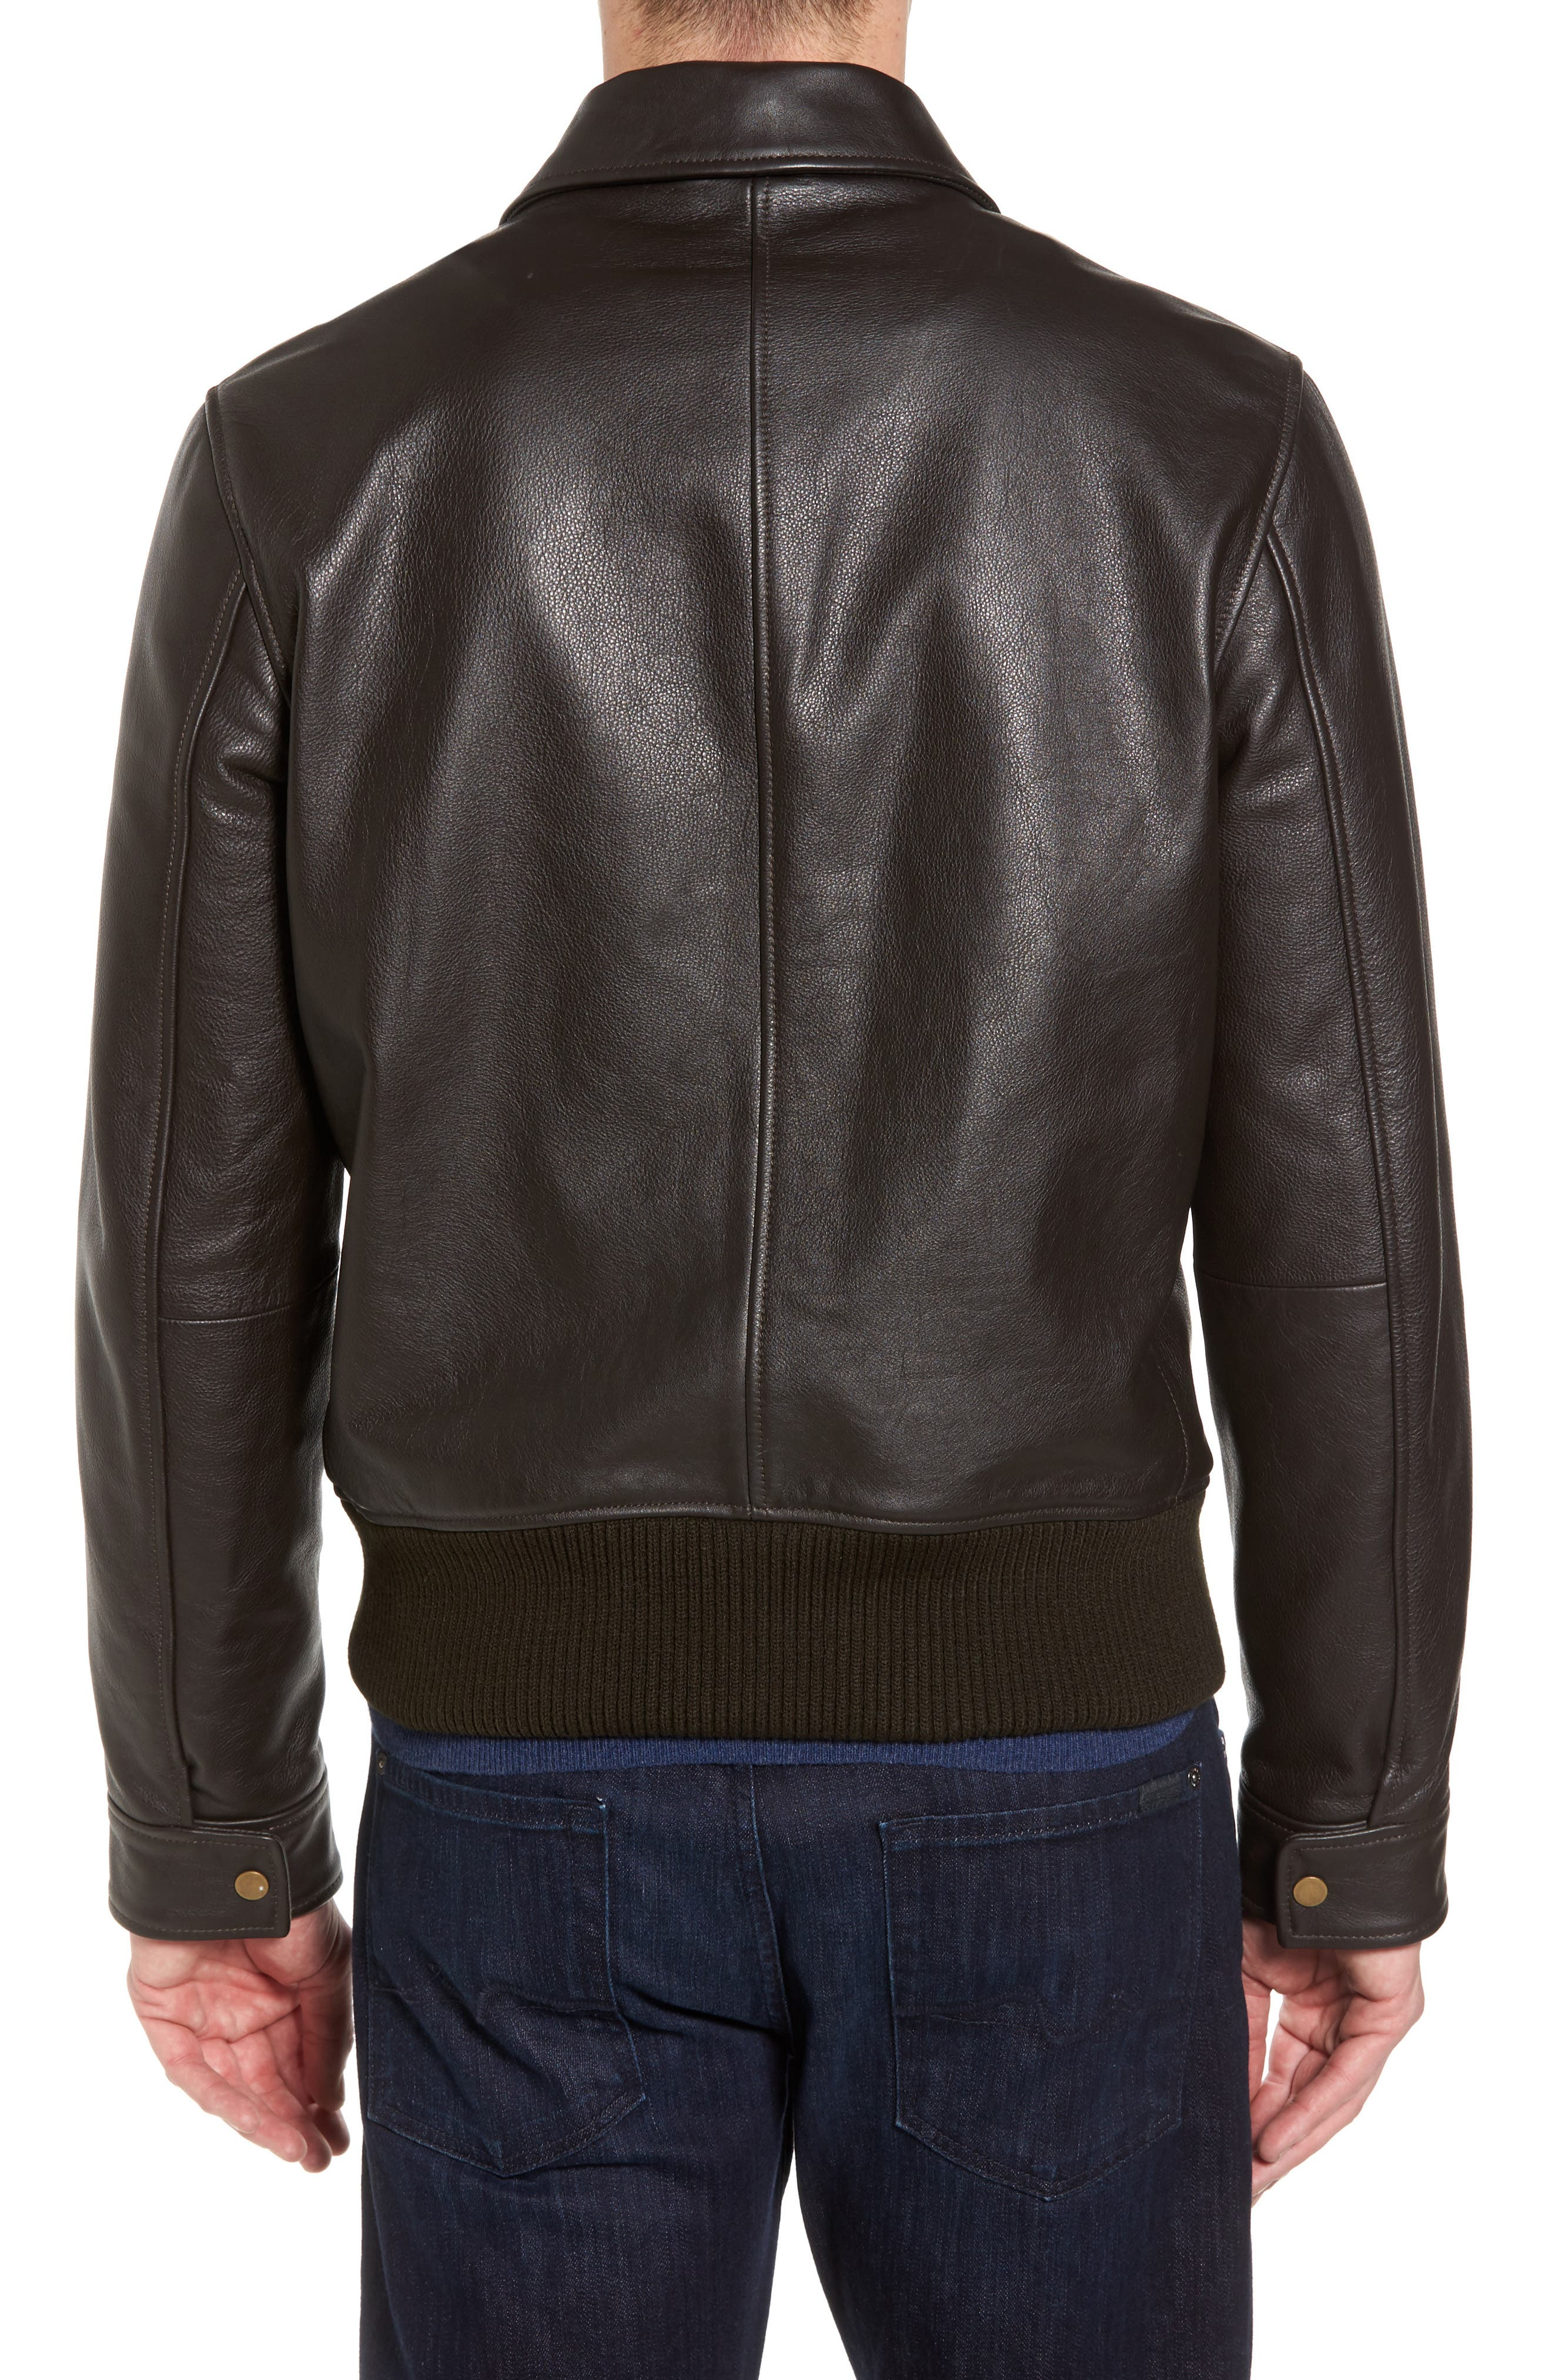 Year Round Leather Jacket,                             Alternate thumbnail 2, color,